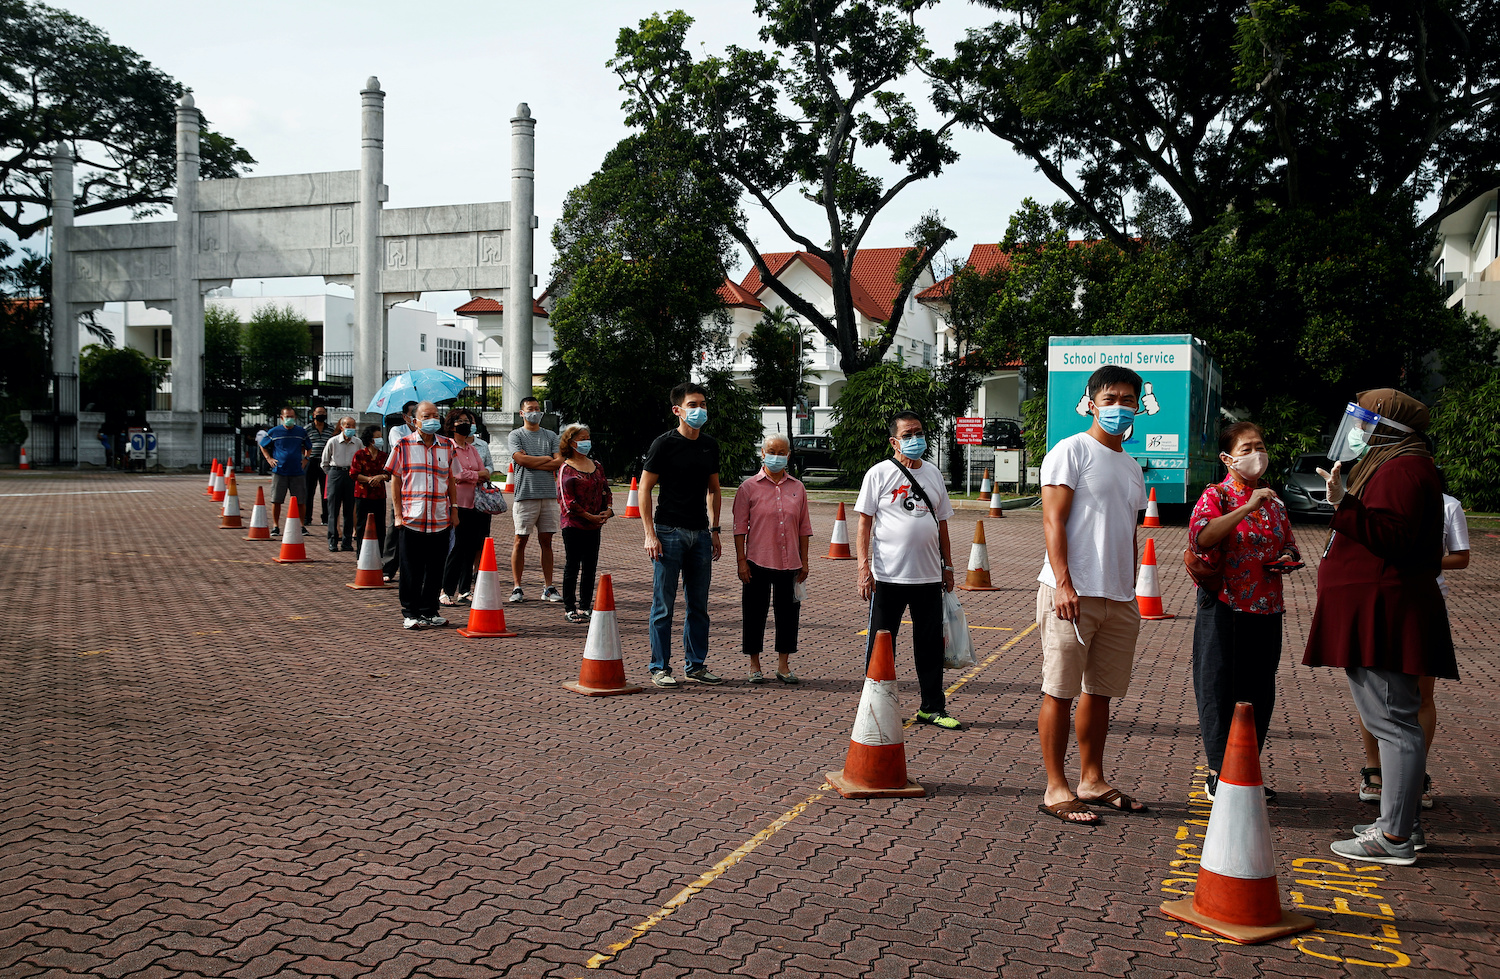 Voters queue at a polling station to cast ballots in Singapore's general election on Friday. (Reuters Photo)